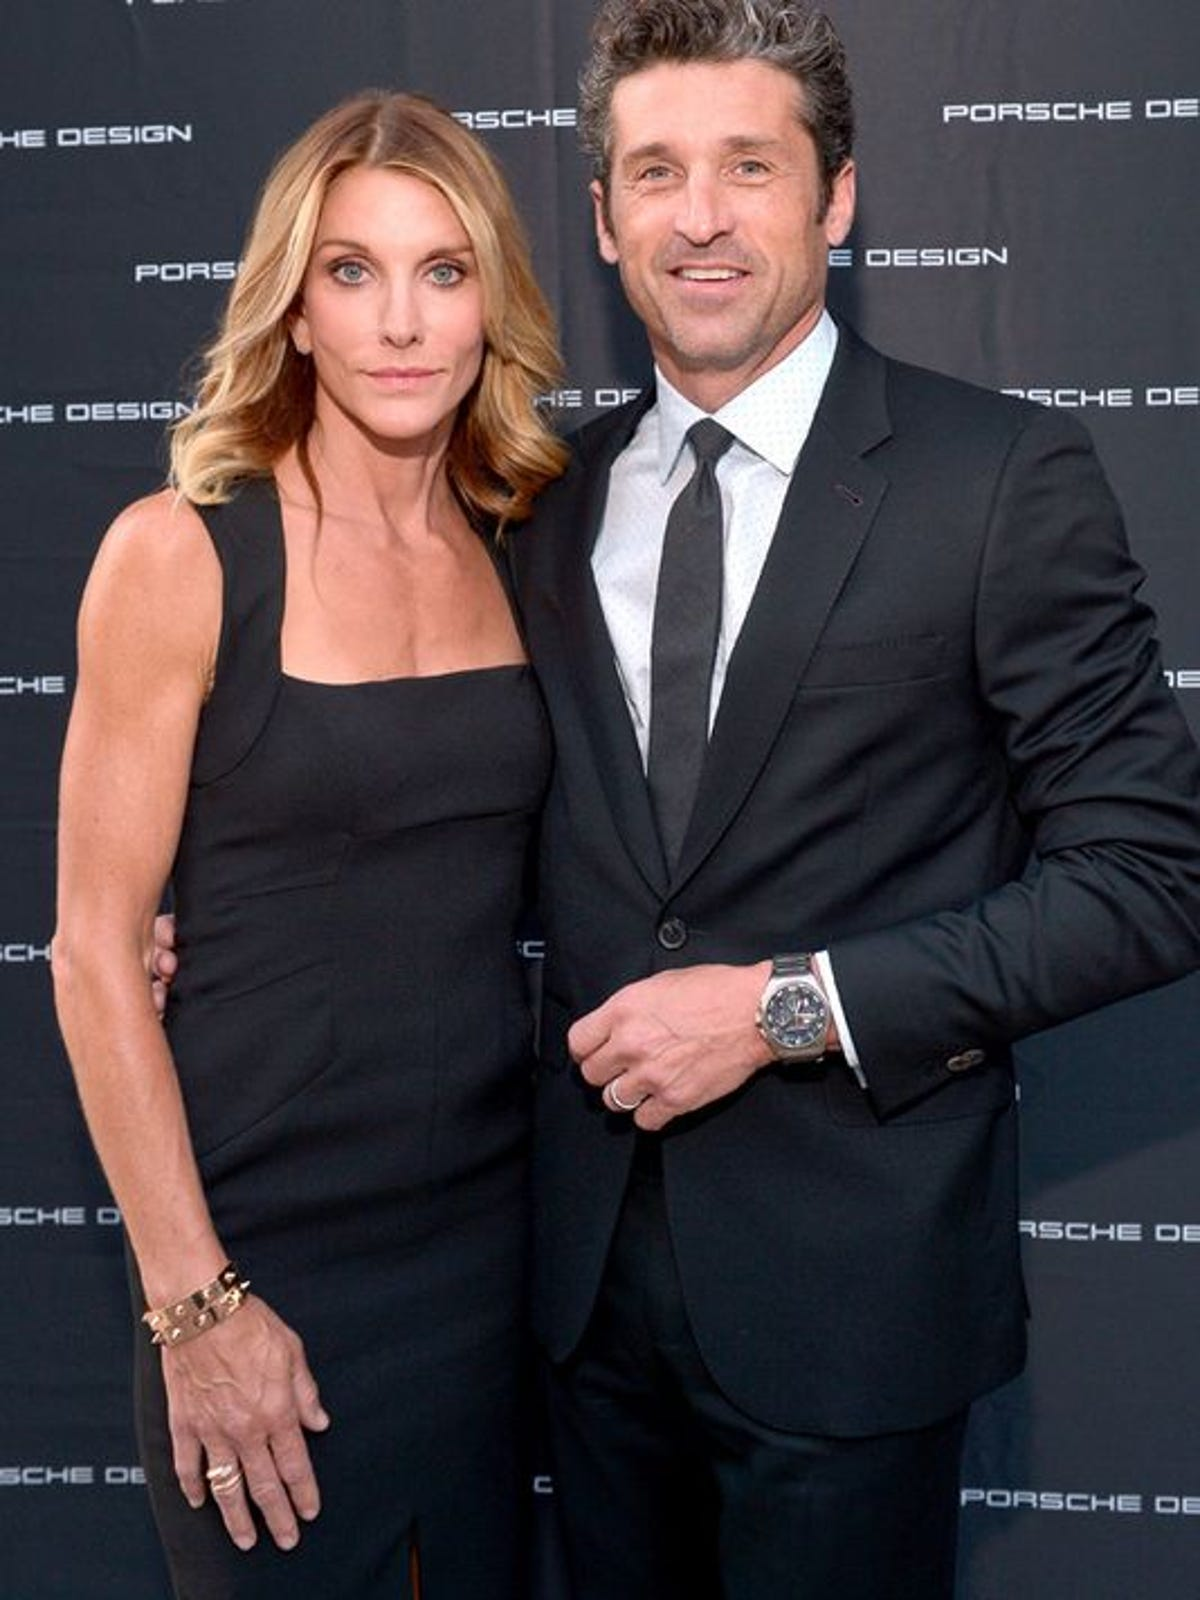 Patrick Dempsey Wife Divorcing After 15 Years